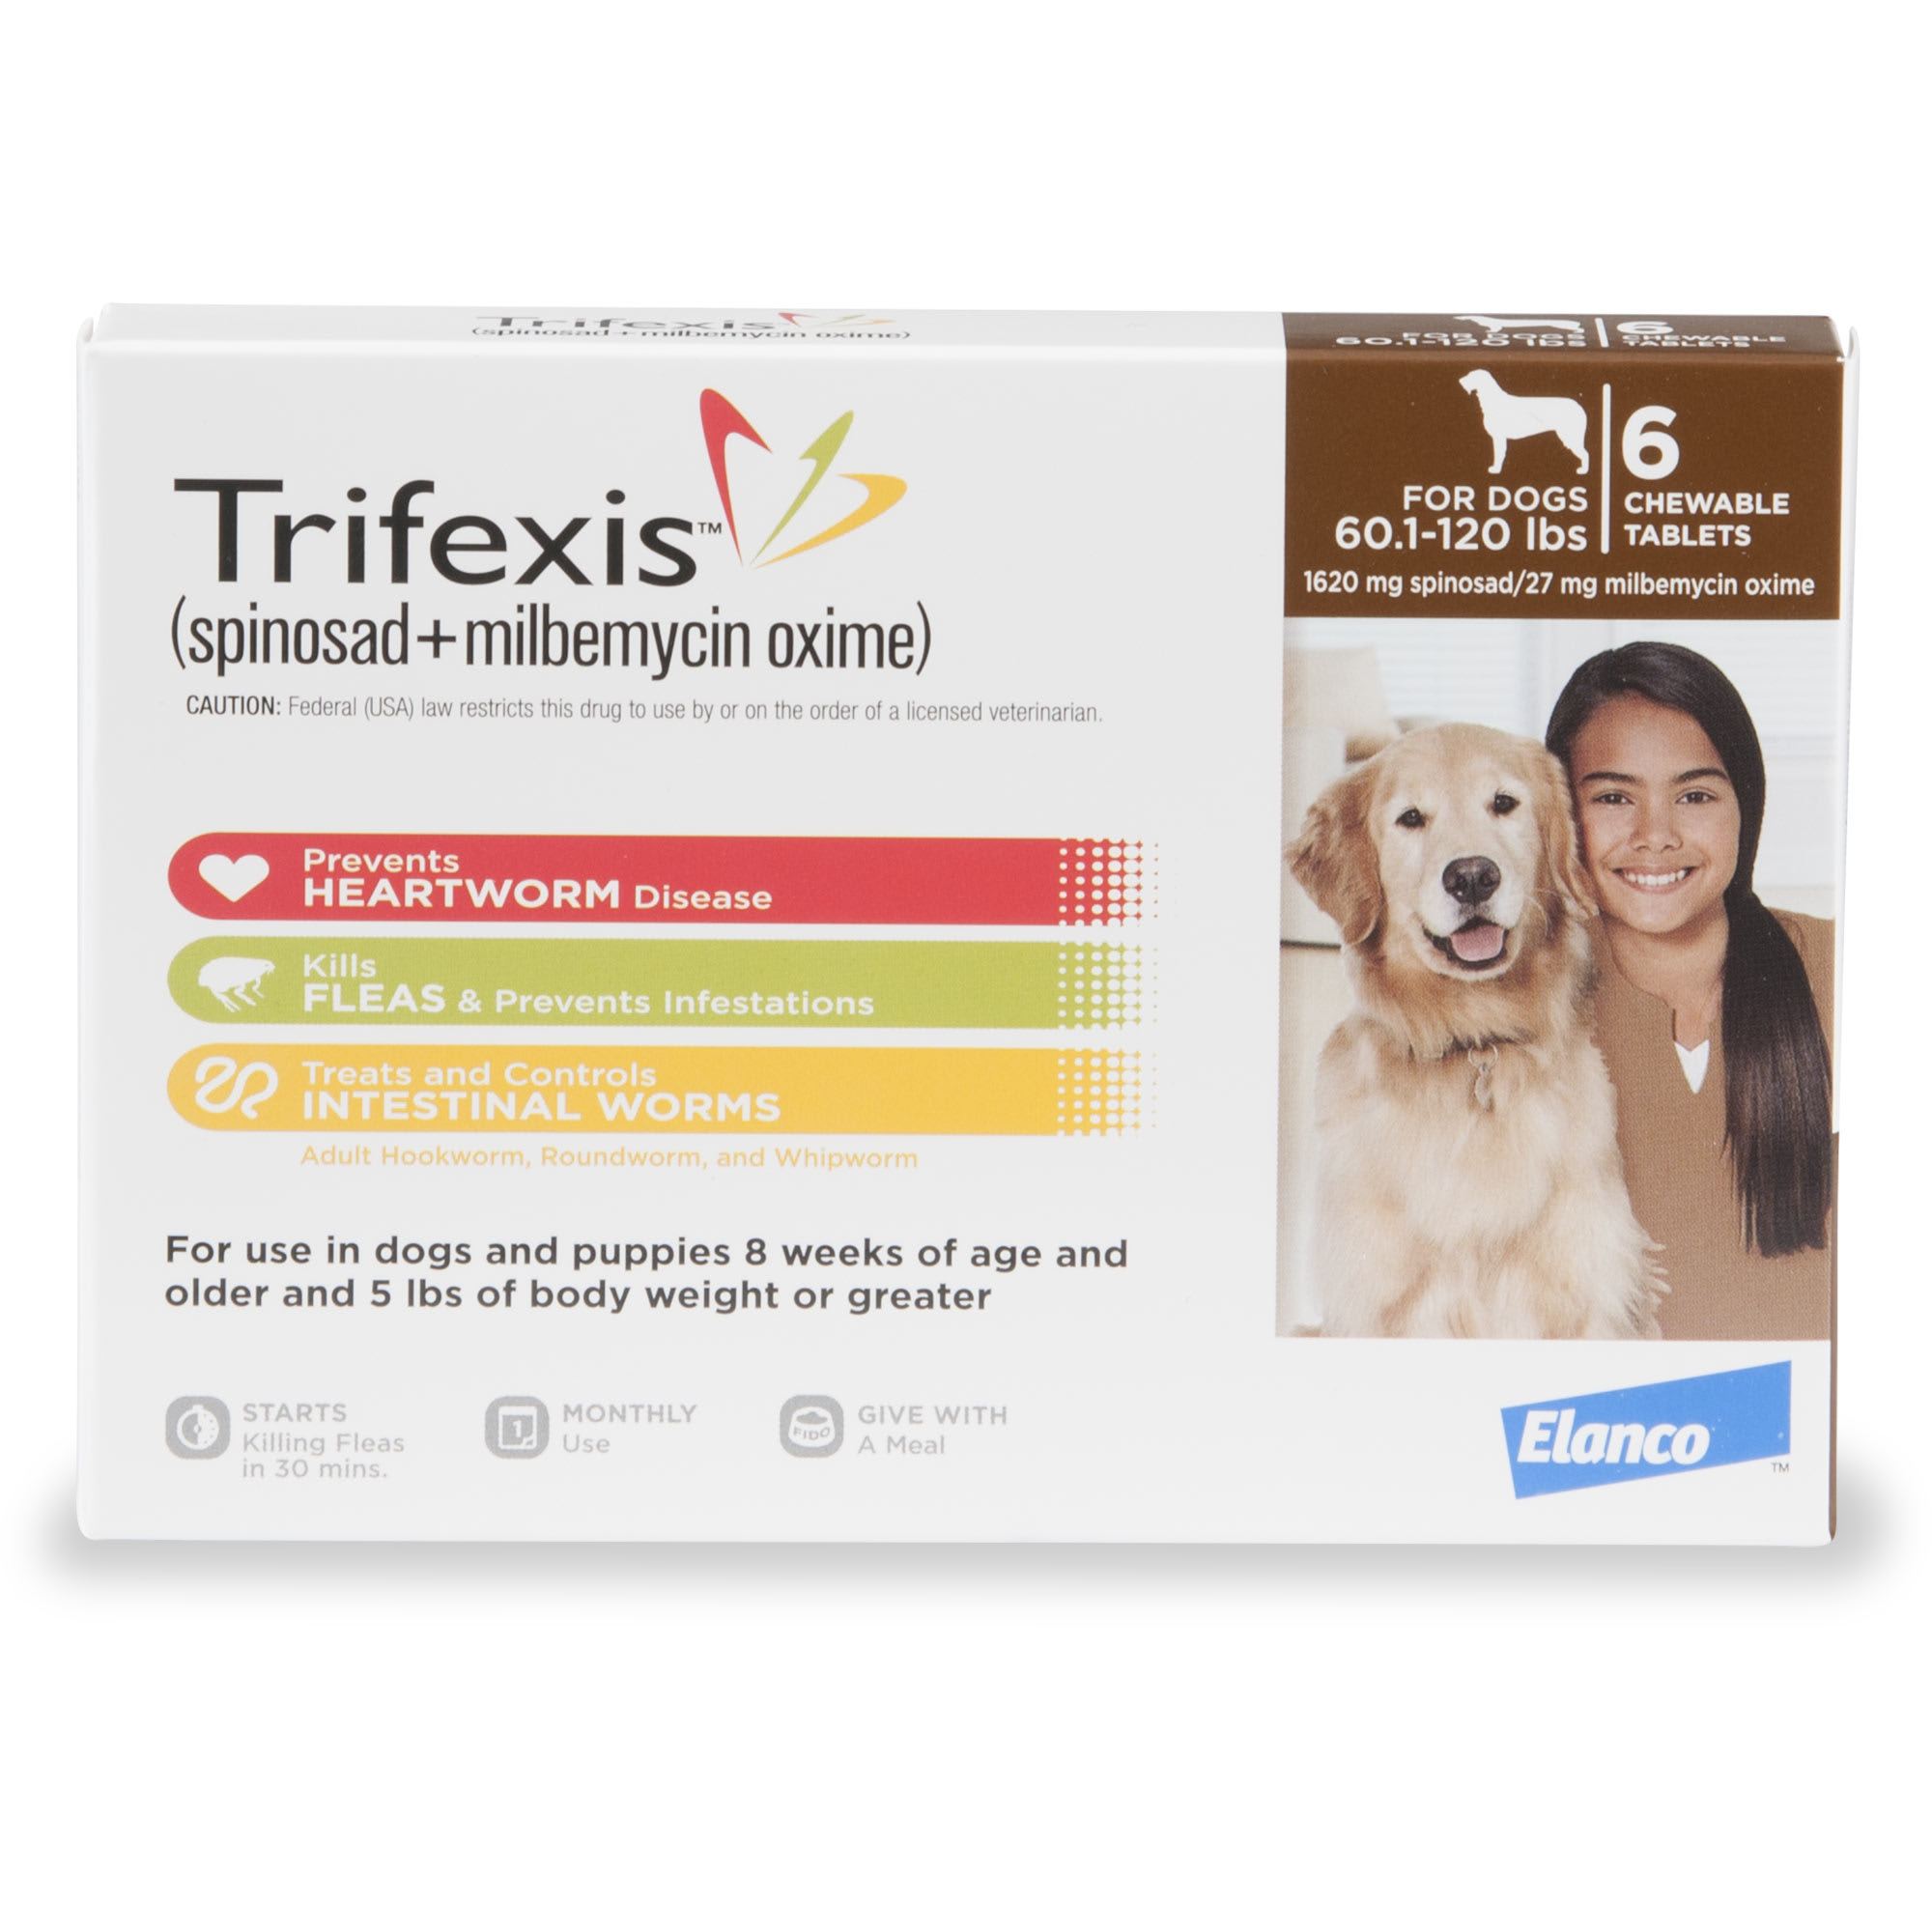 10++ Where can i buy trifexis without a vet prescription information